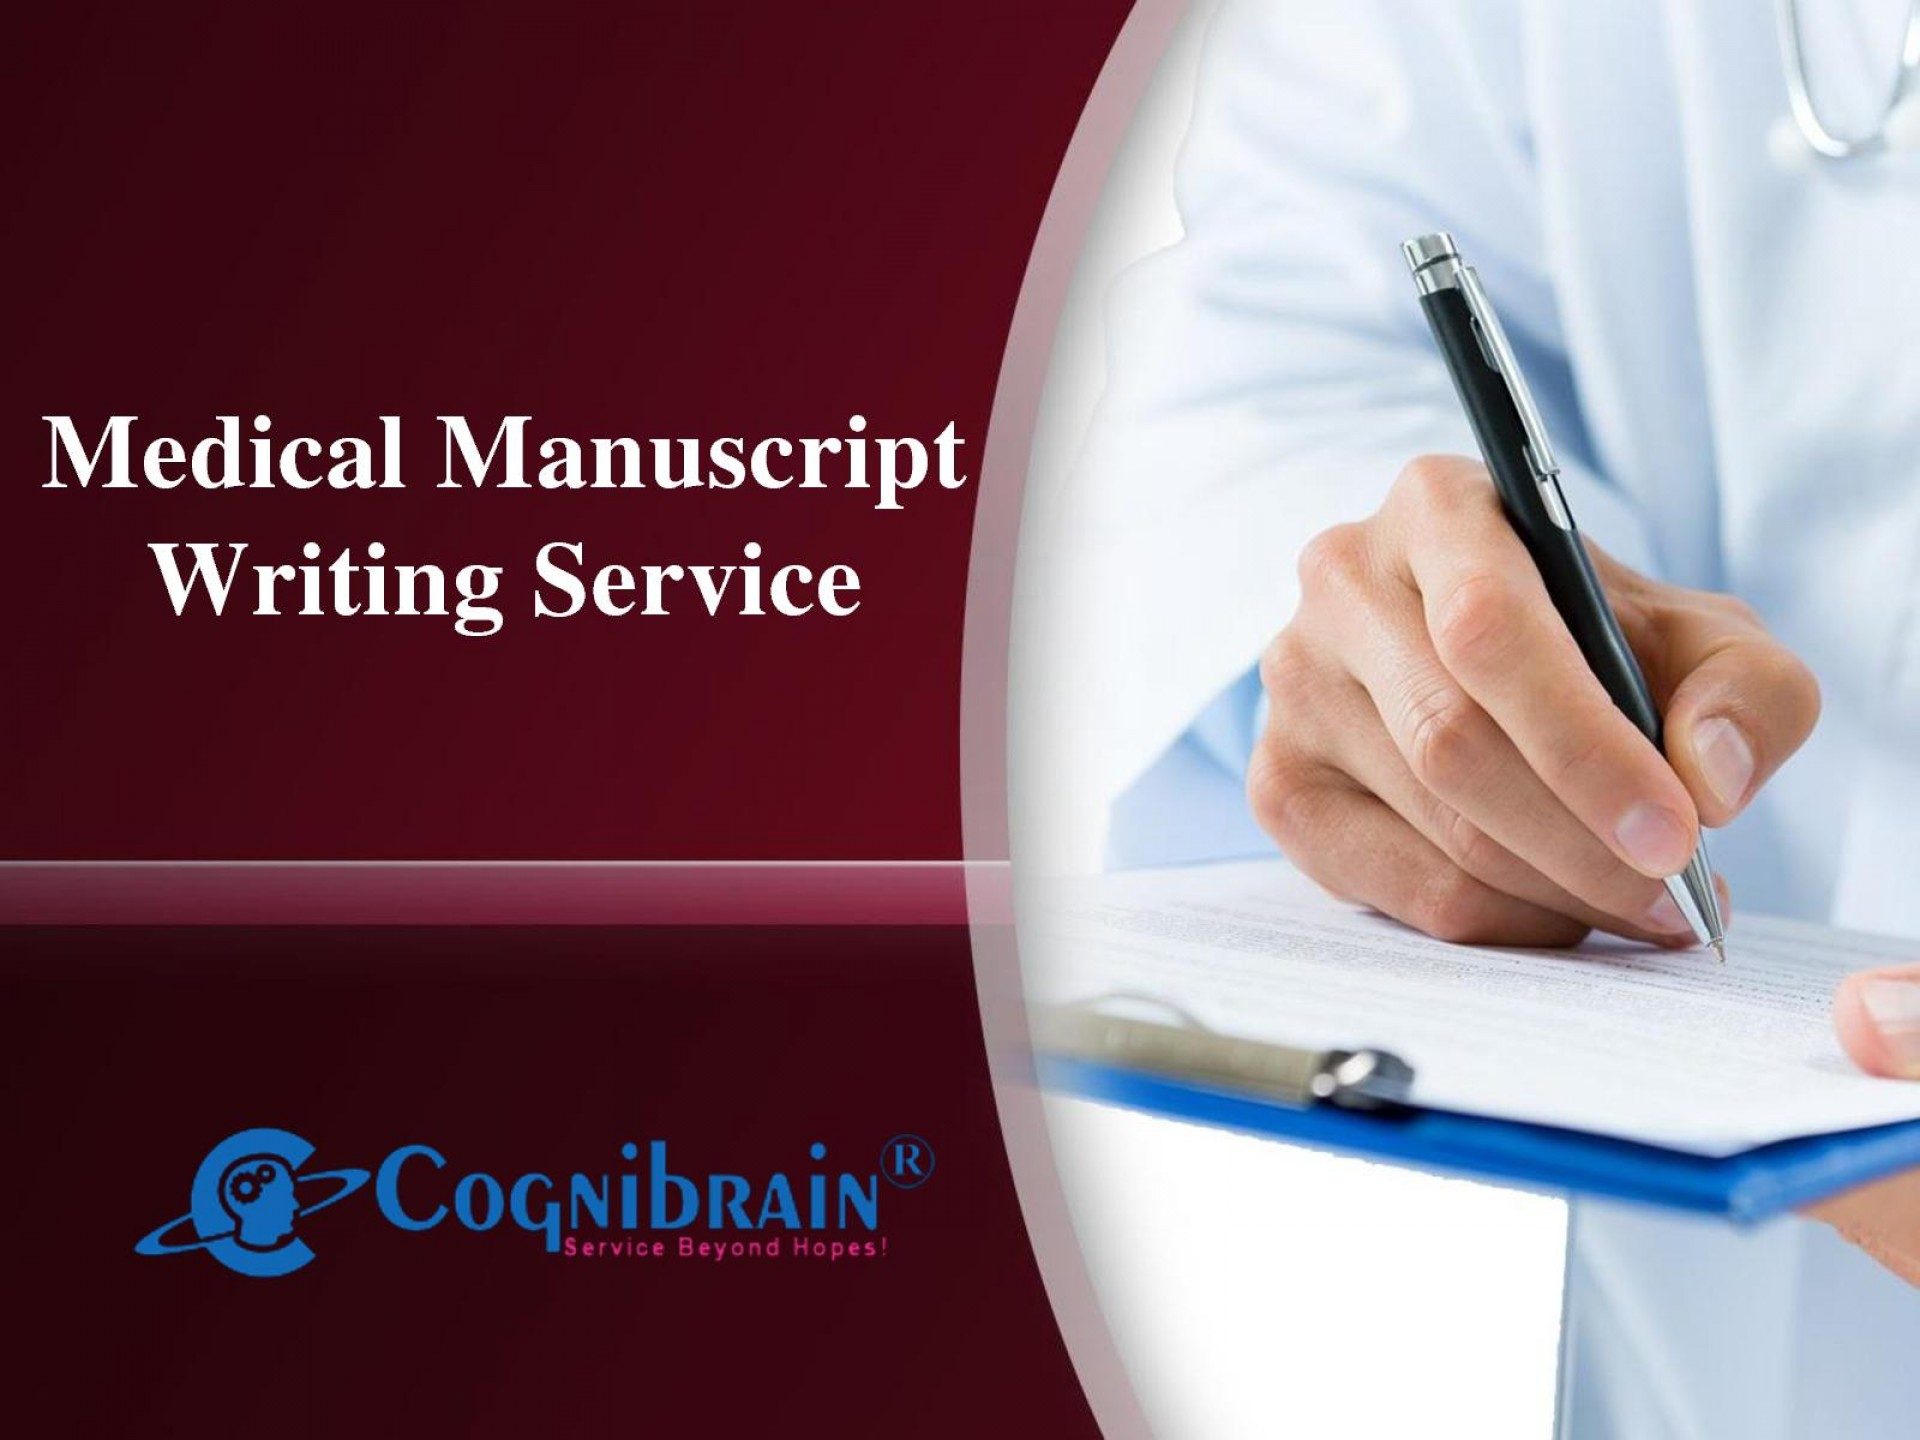 003 Researchs Writing Service Manuscript Services Outstanding Research Papers Paper In Chennai Reddit India 1920